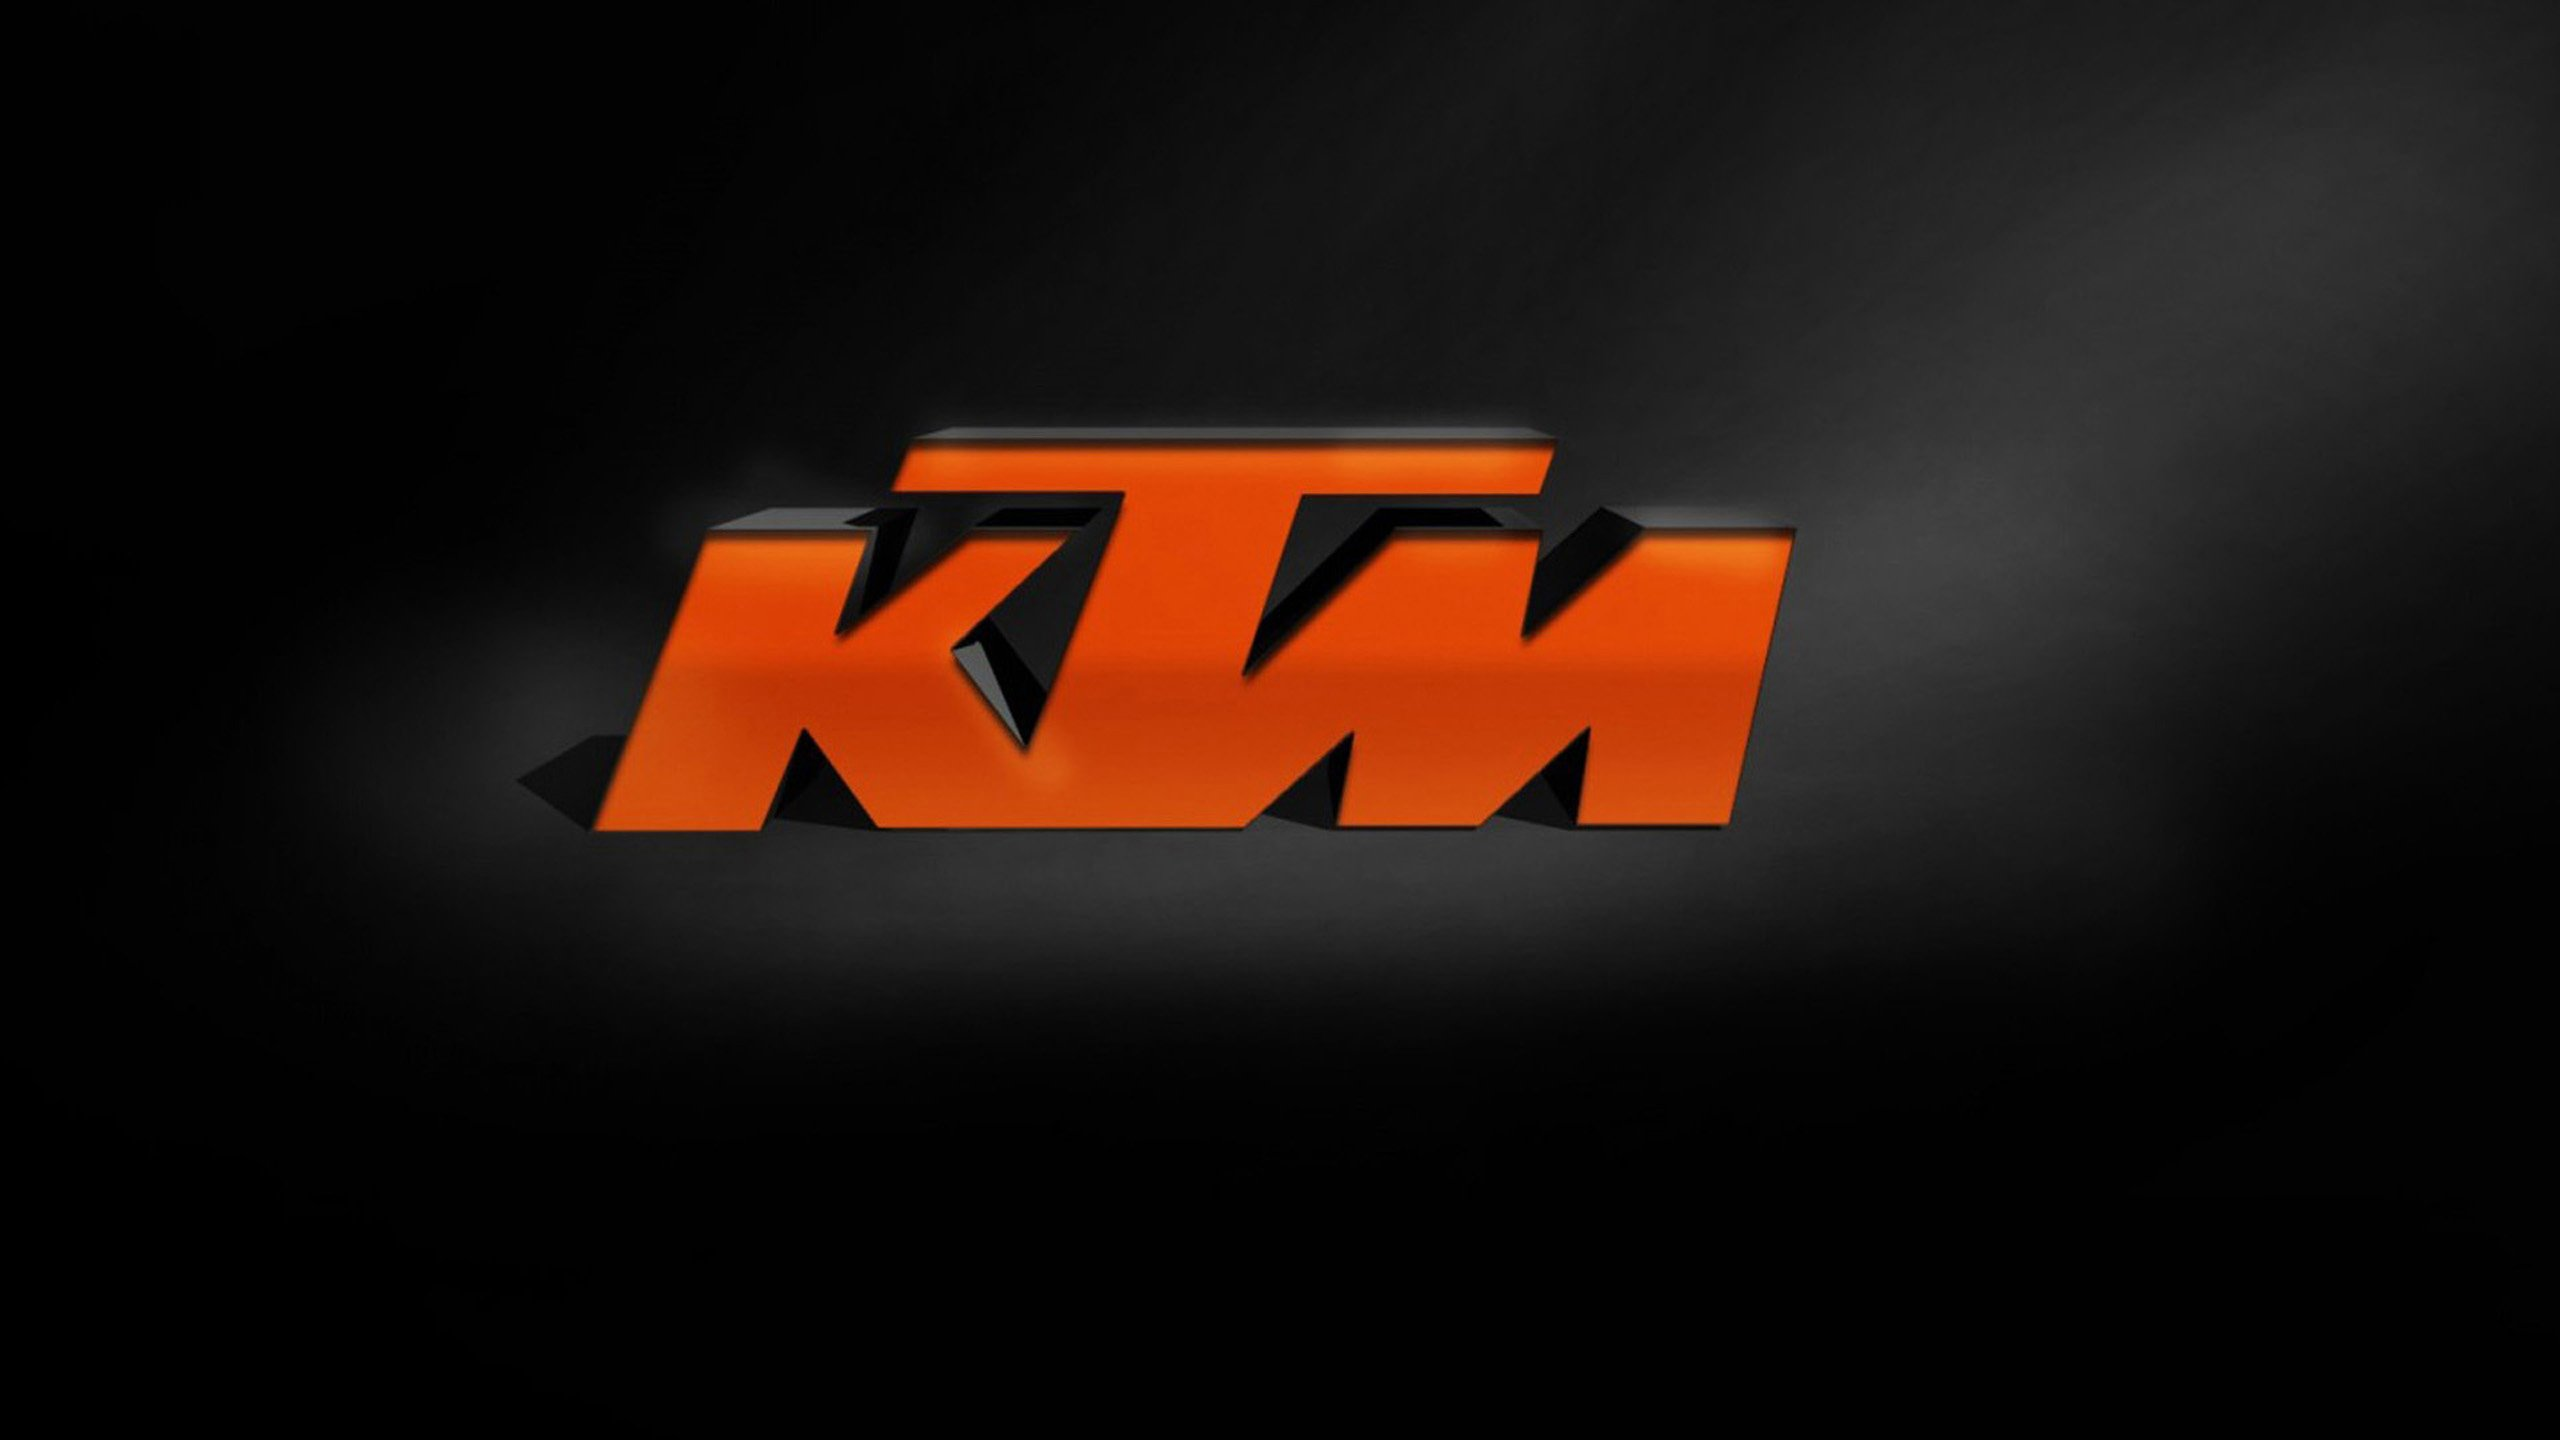 KTM logo wallpaper 03 HD Desktop Wallpapers 2560x1440